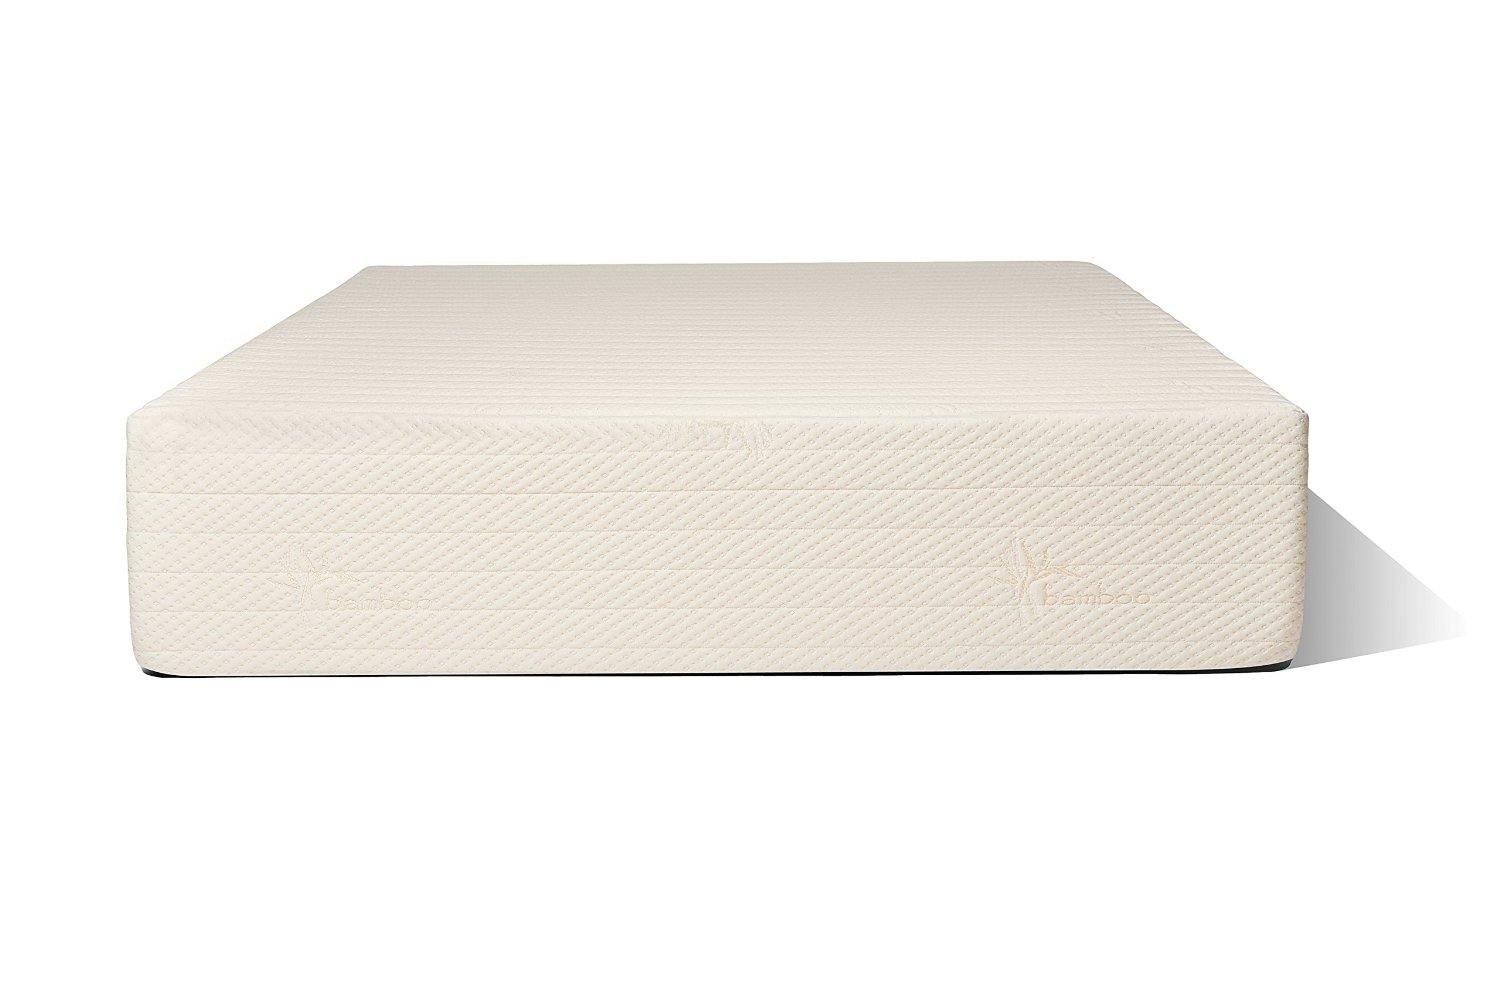 Brentwood Mattresses Reviews: Guide to the Brentwood ...